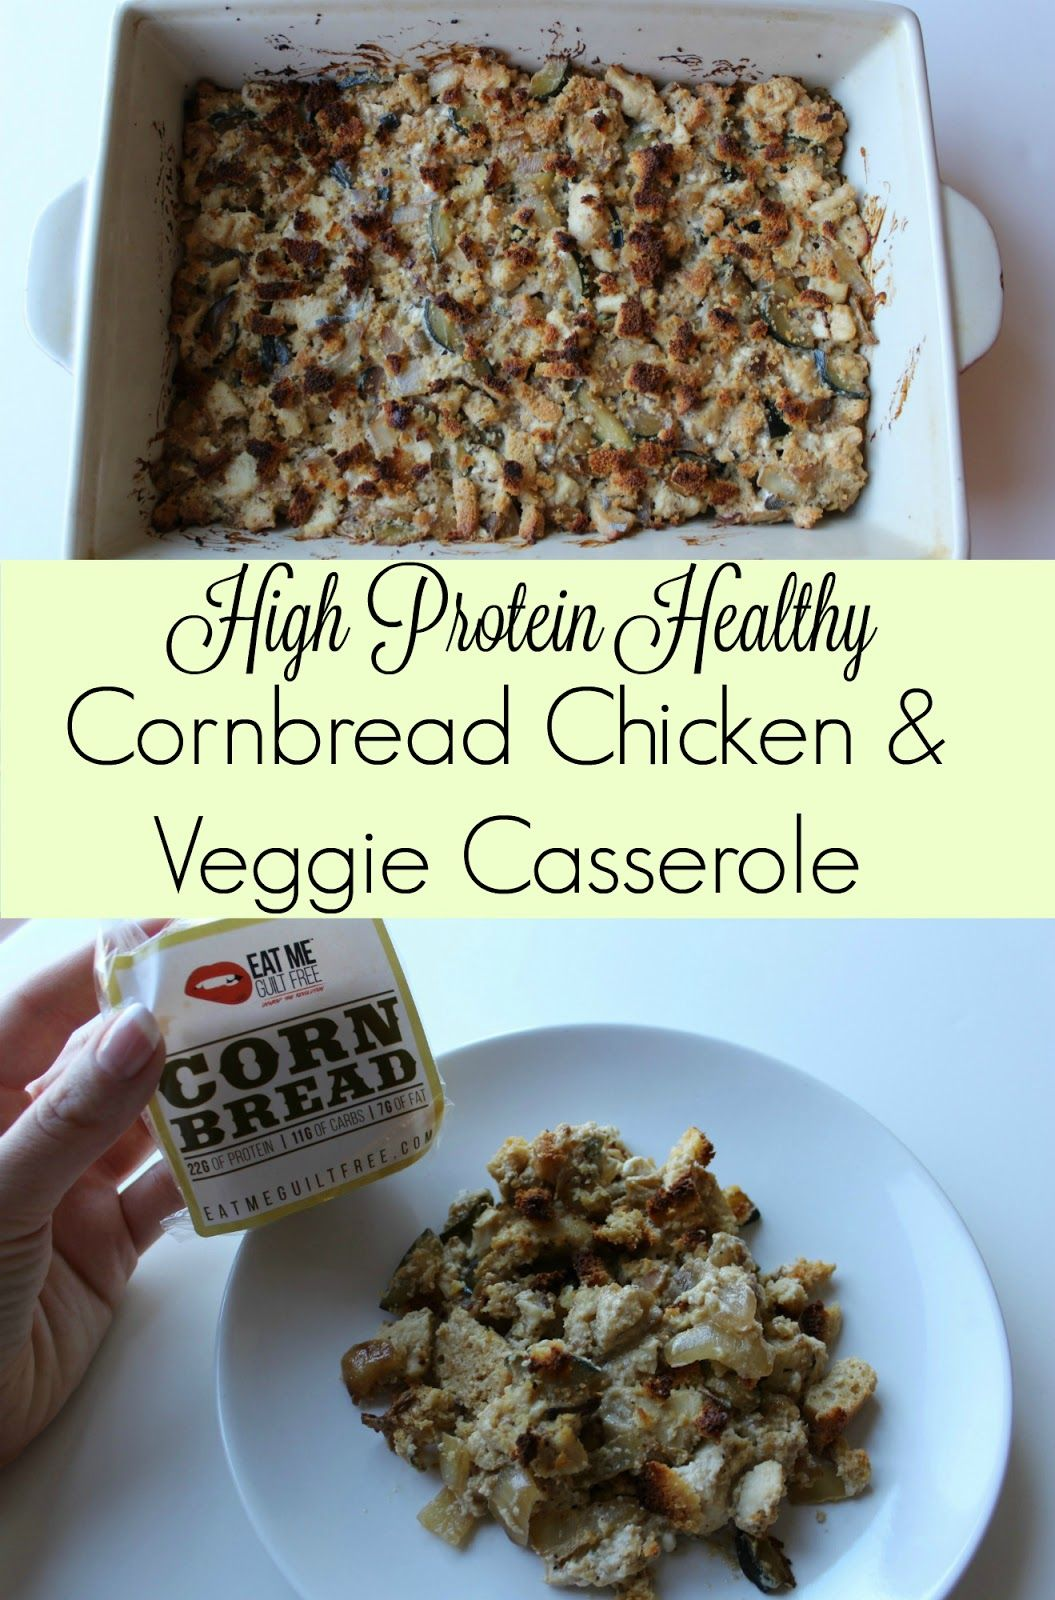 """This cornbread casserole skips using any """"cream of"""" soups and instead uses greek yogurt and high protein cornbread cakes to make a hearty casserole full of protein!"""